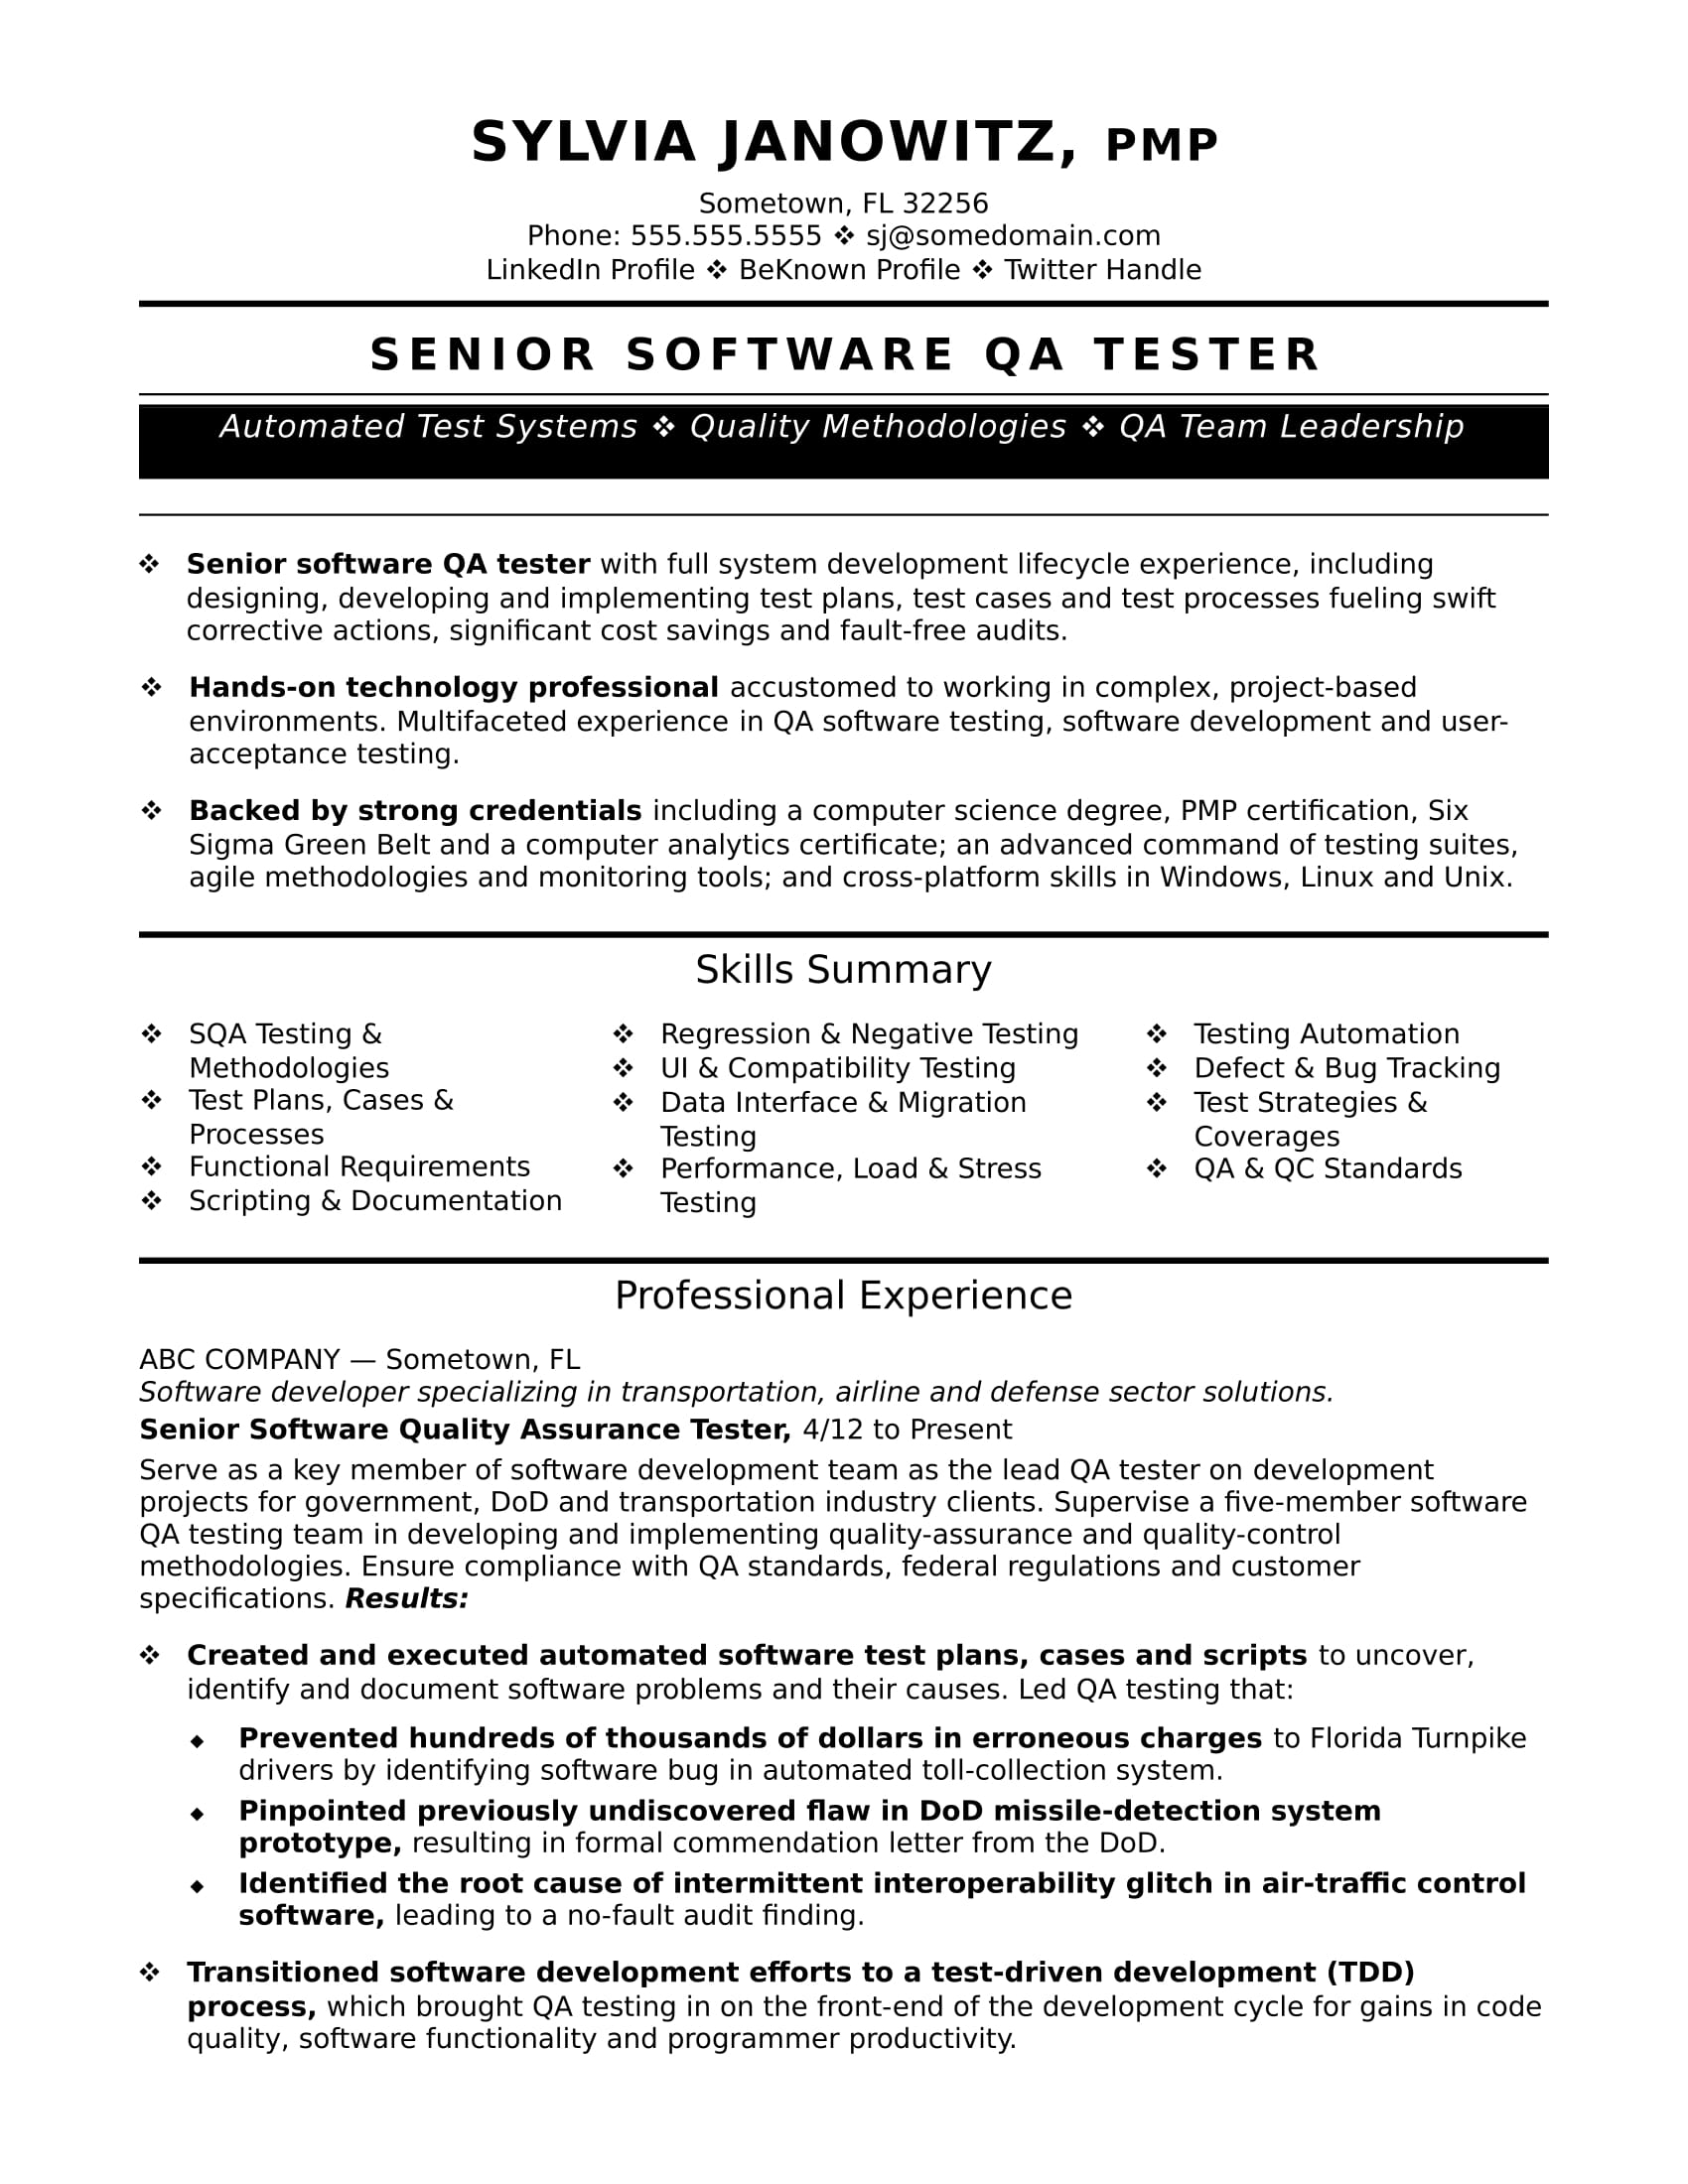 Experienced QA Software Tester Resume Sample  Quality Assurance Engineer Resume